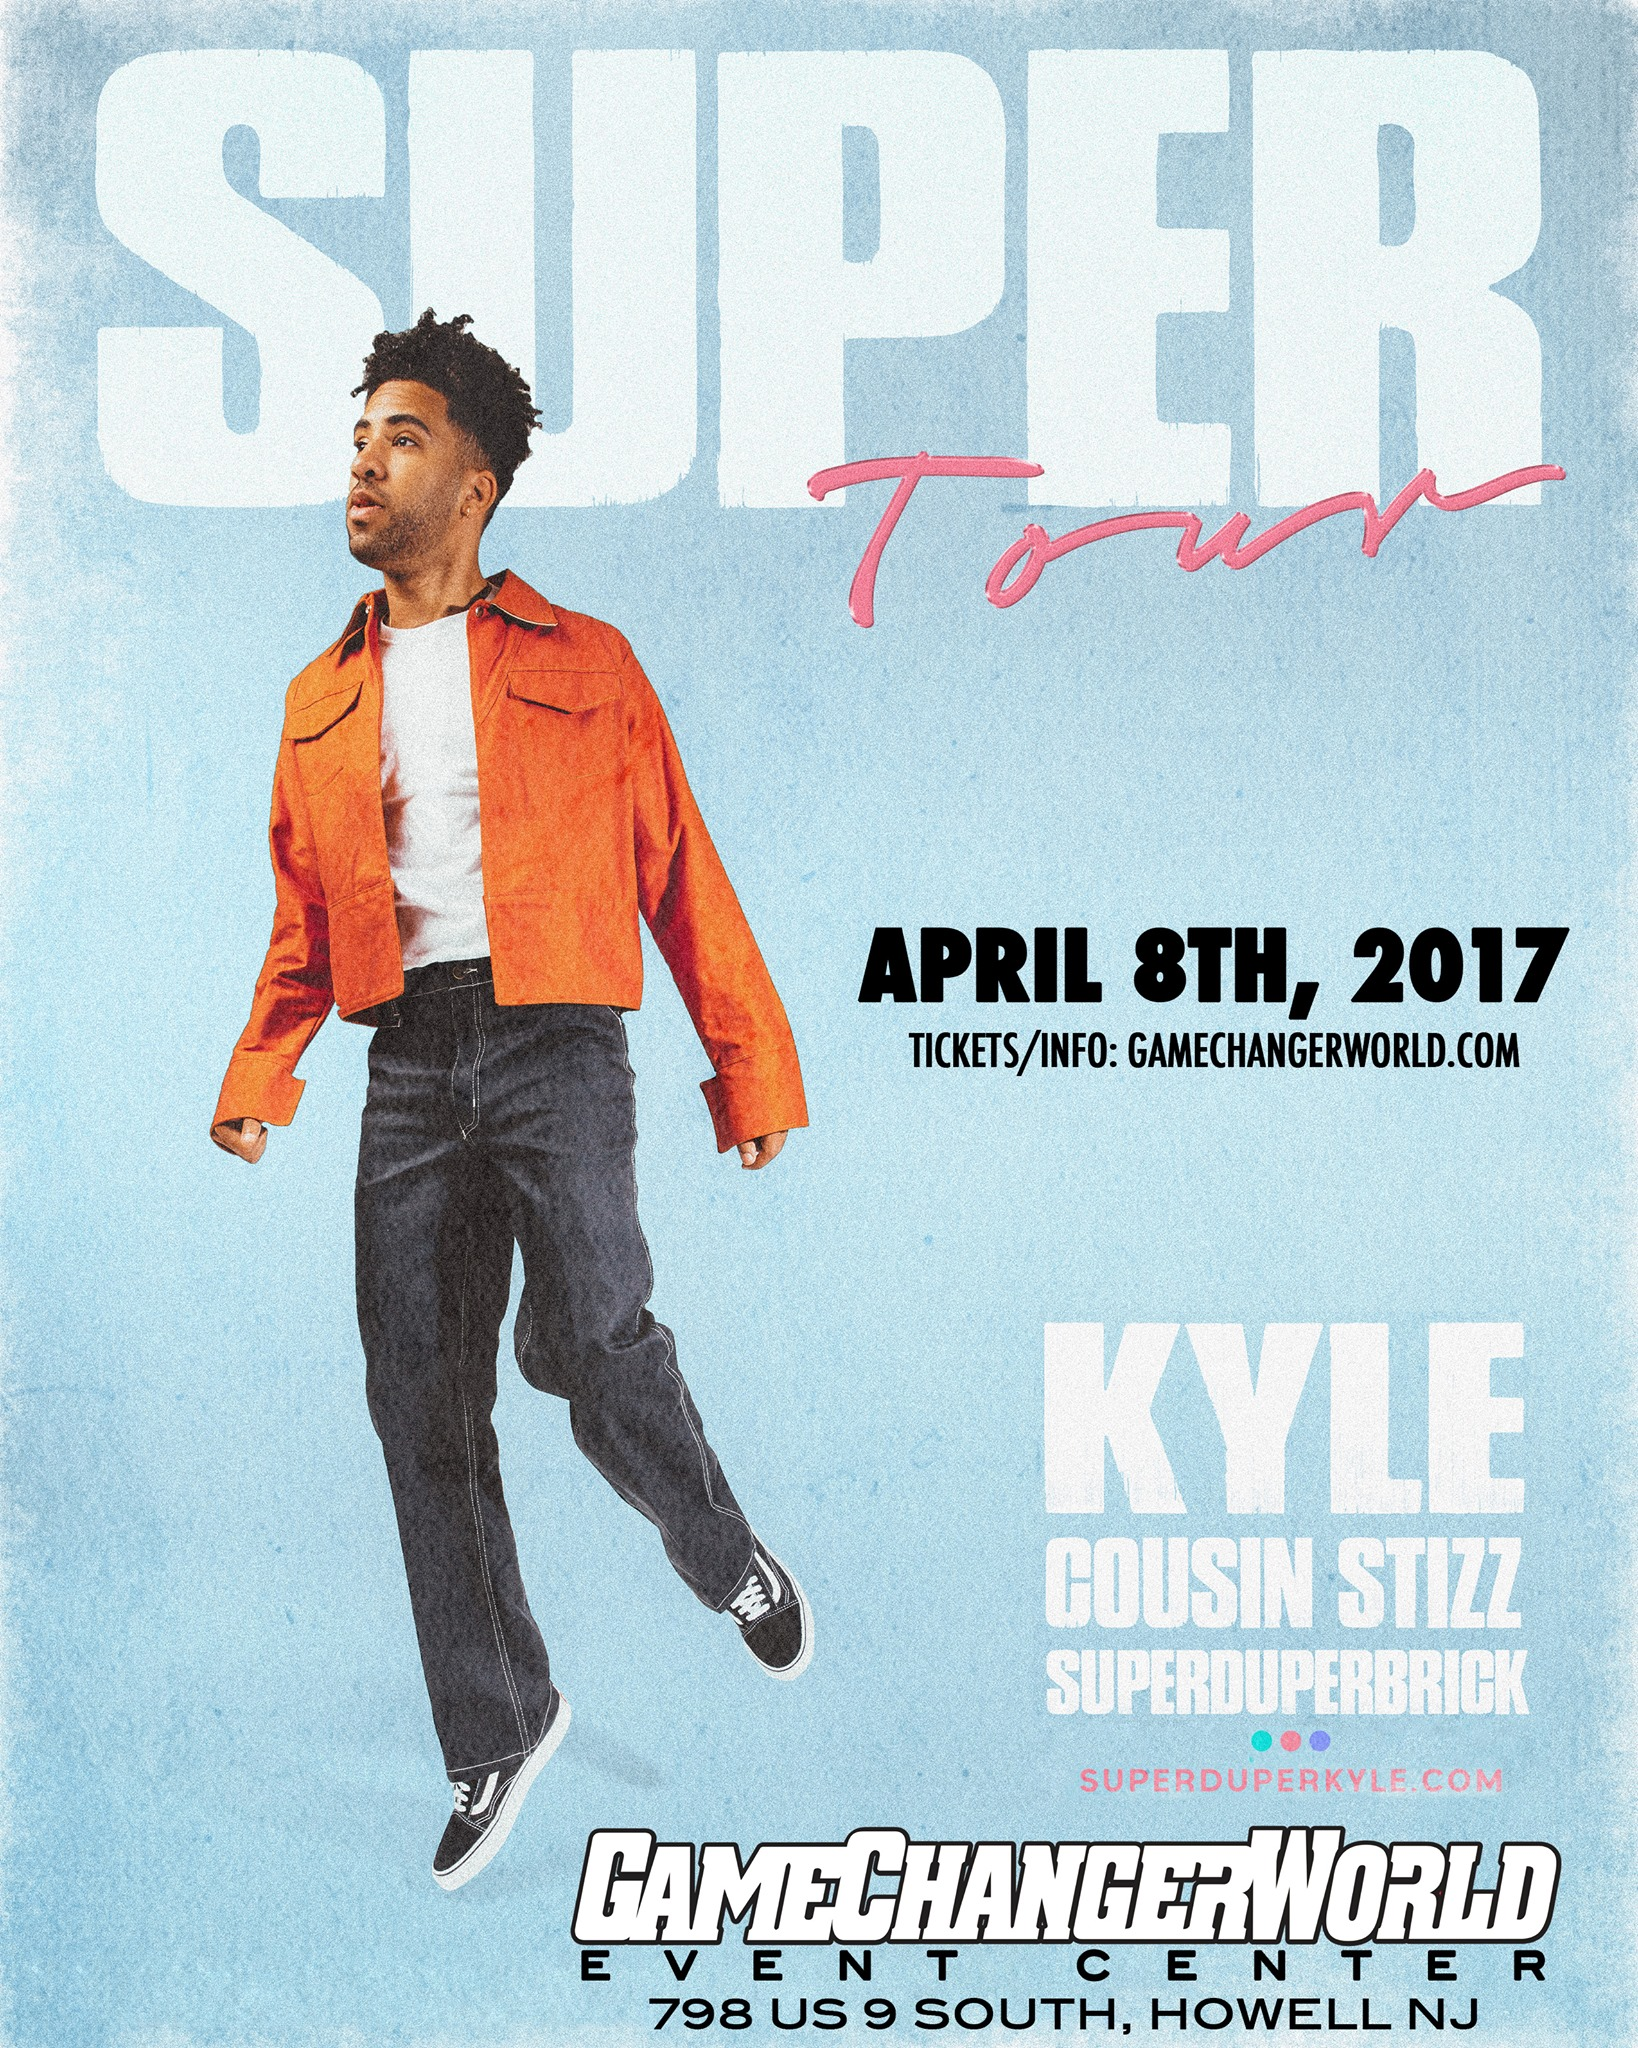 SUPER Tour KYLE + Cousin Stizz